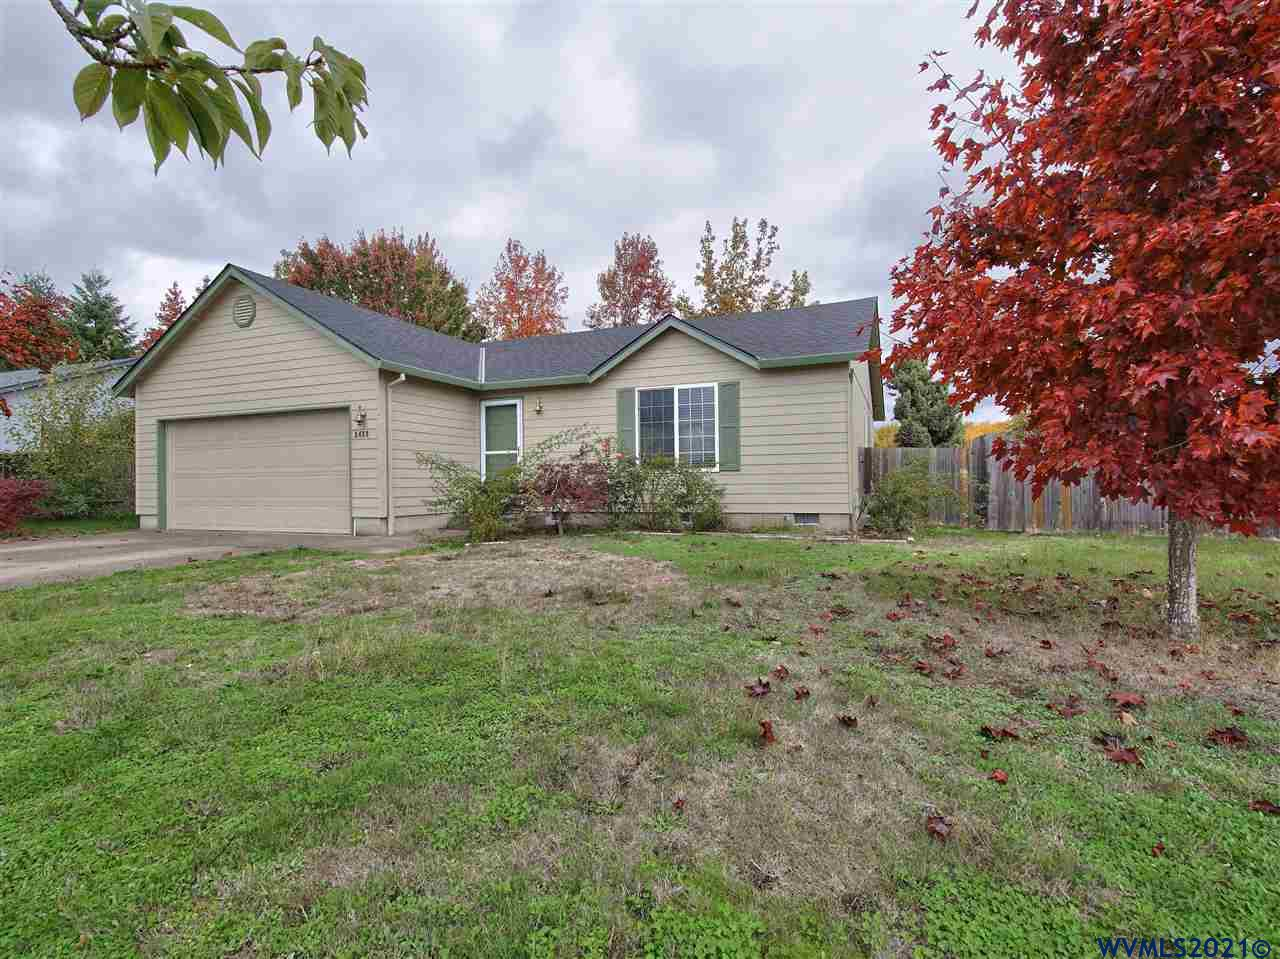 Don't miss out on this opportunity....This home is close to shopping and not too far from OSU. Perfect for an investment rental or a great neighborhood for a homeowner. Recent upgrades include new roof and exterior paint,2020 gas furnace, and 2018 gas water heater.  Open house 10/23/2021 1:00-3:00pm